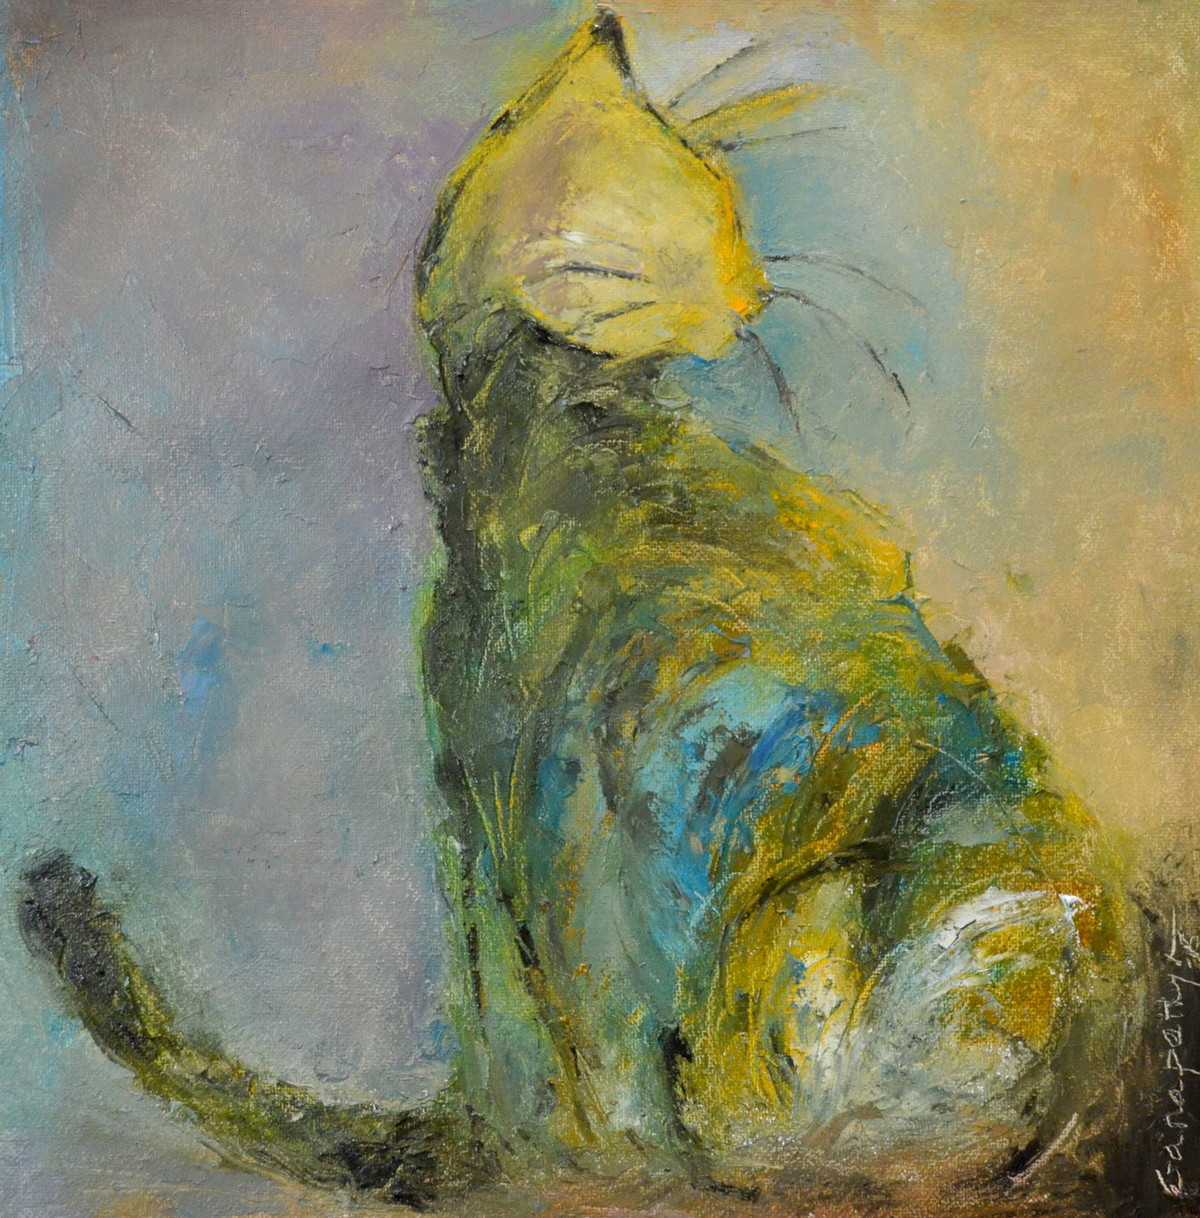 cat 121 by Ganapathy Subramaniam, Impressionism Painting, Oil on Paper, Green color